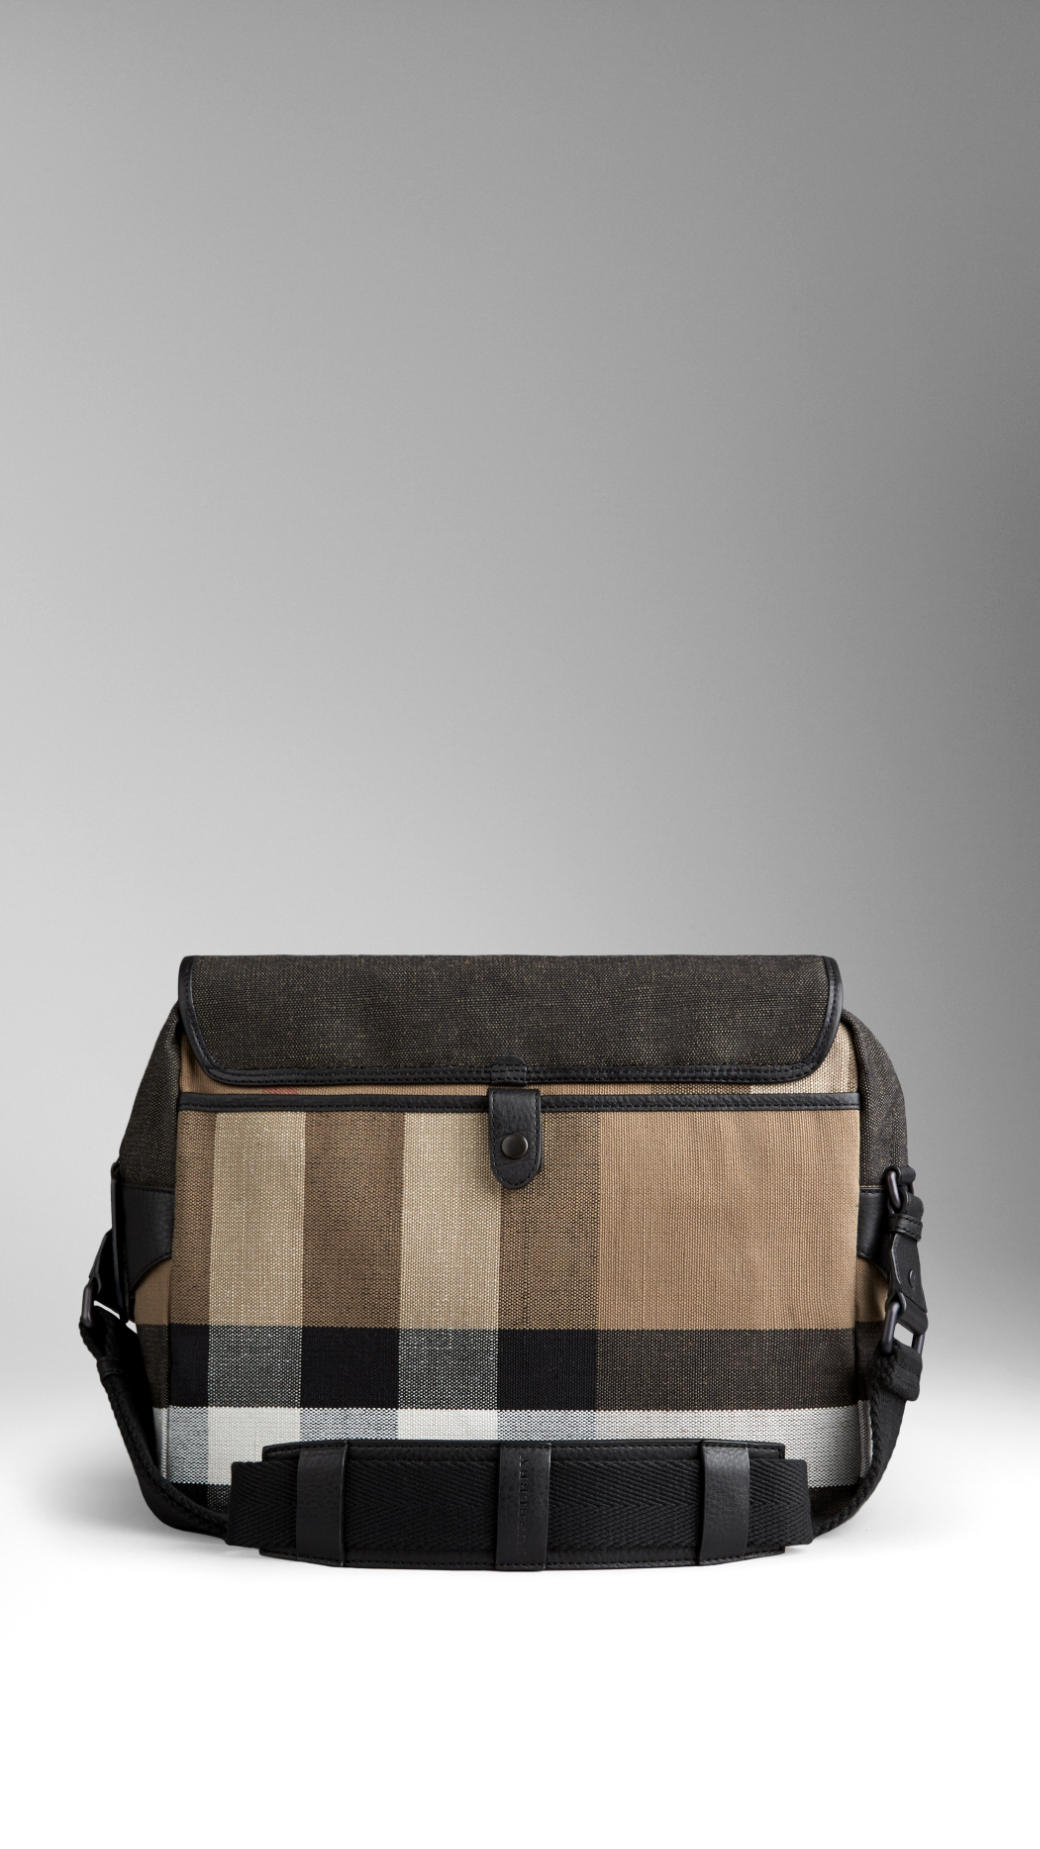 Burberry Canvas Check Messenger Bag in Black for Men - Lyst 5ac489cca39ae